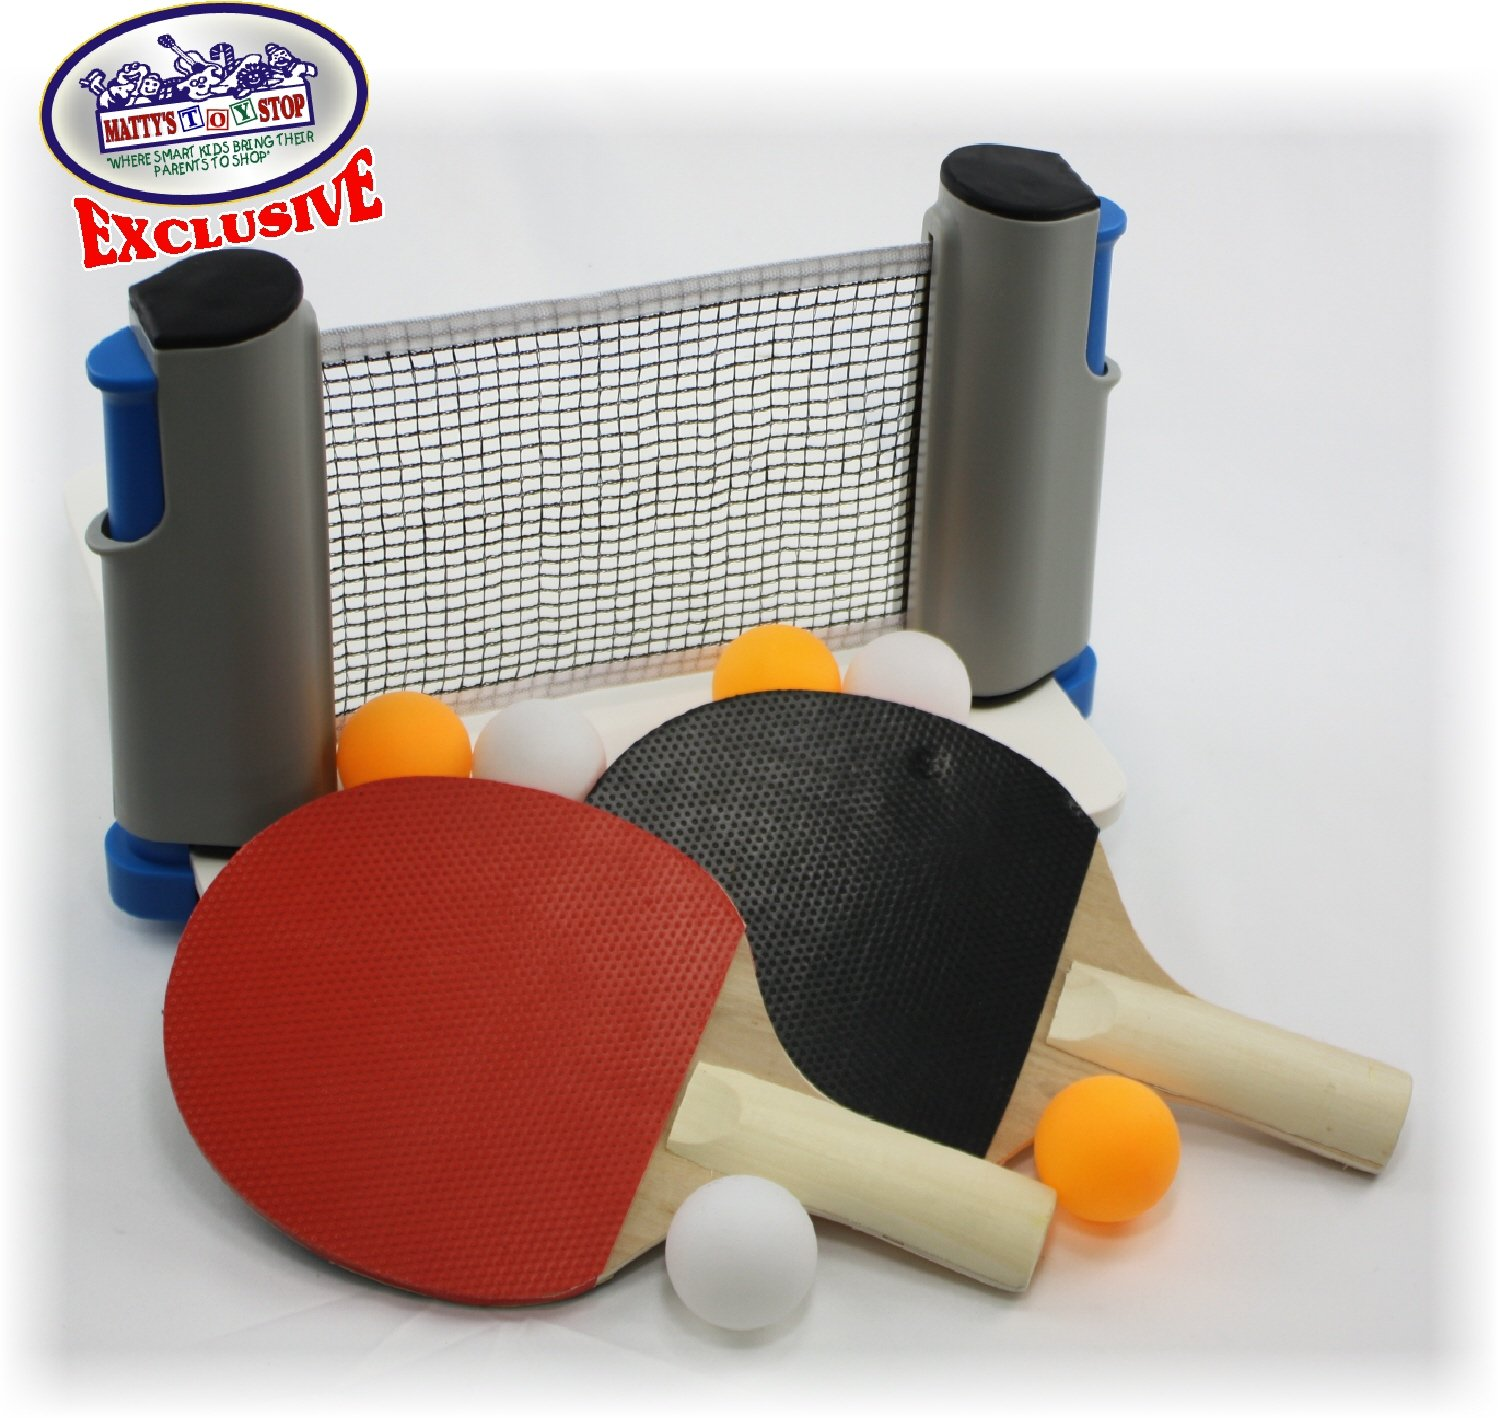 Matty's Toy Stop Deluxe Table Tennis (Ping Pong) To Go with Fully Adjustable Net, 2 Paddles, 6 Balls (3 Orange & 3 White) & Mesh Storage Bag by Matty's Toy Stop (Image #2)